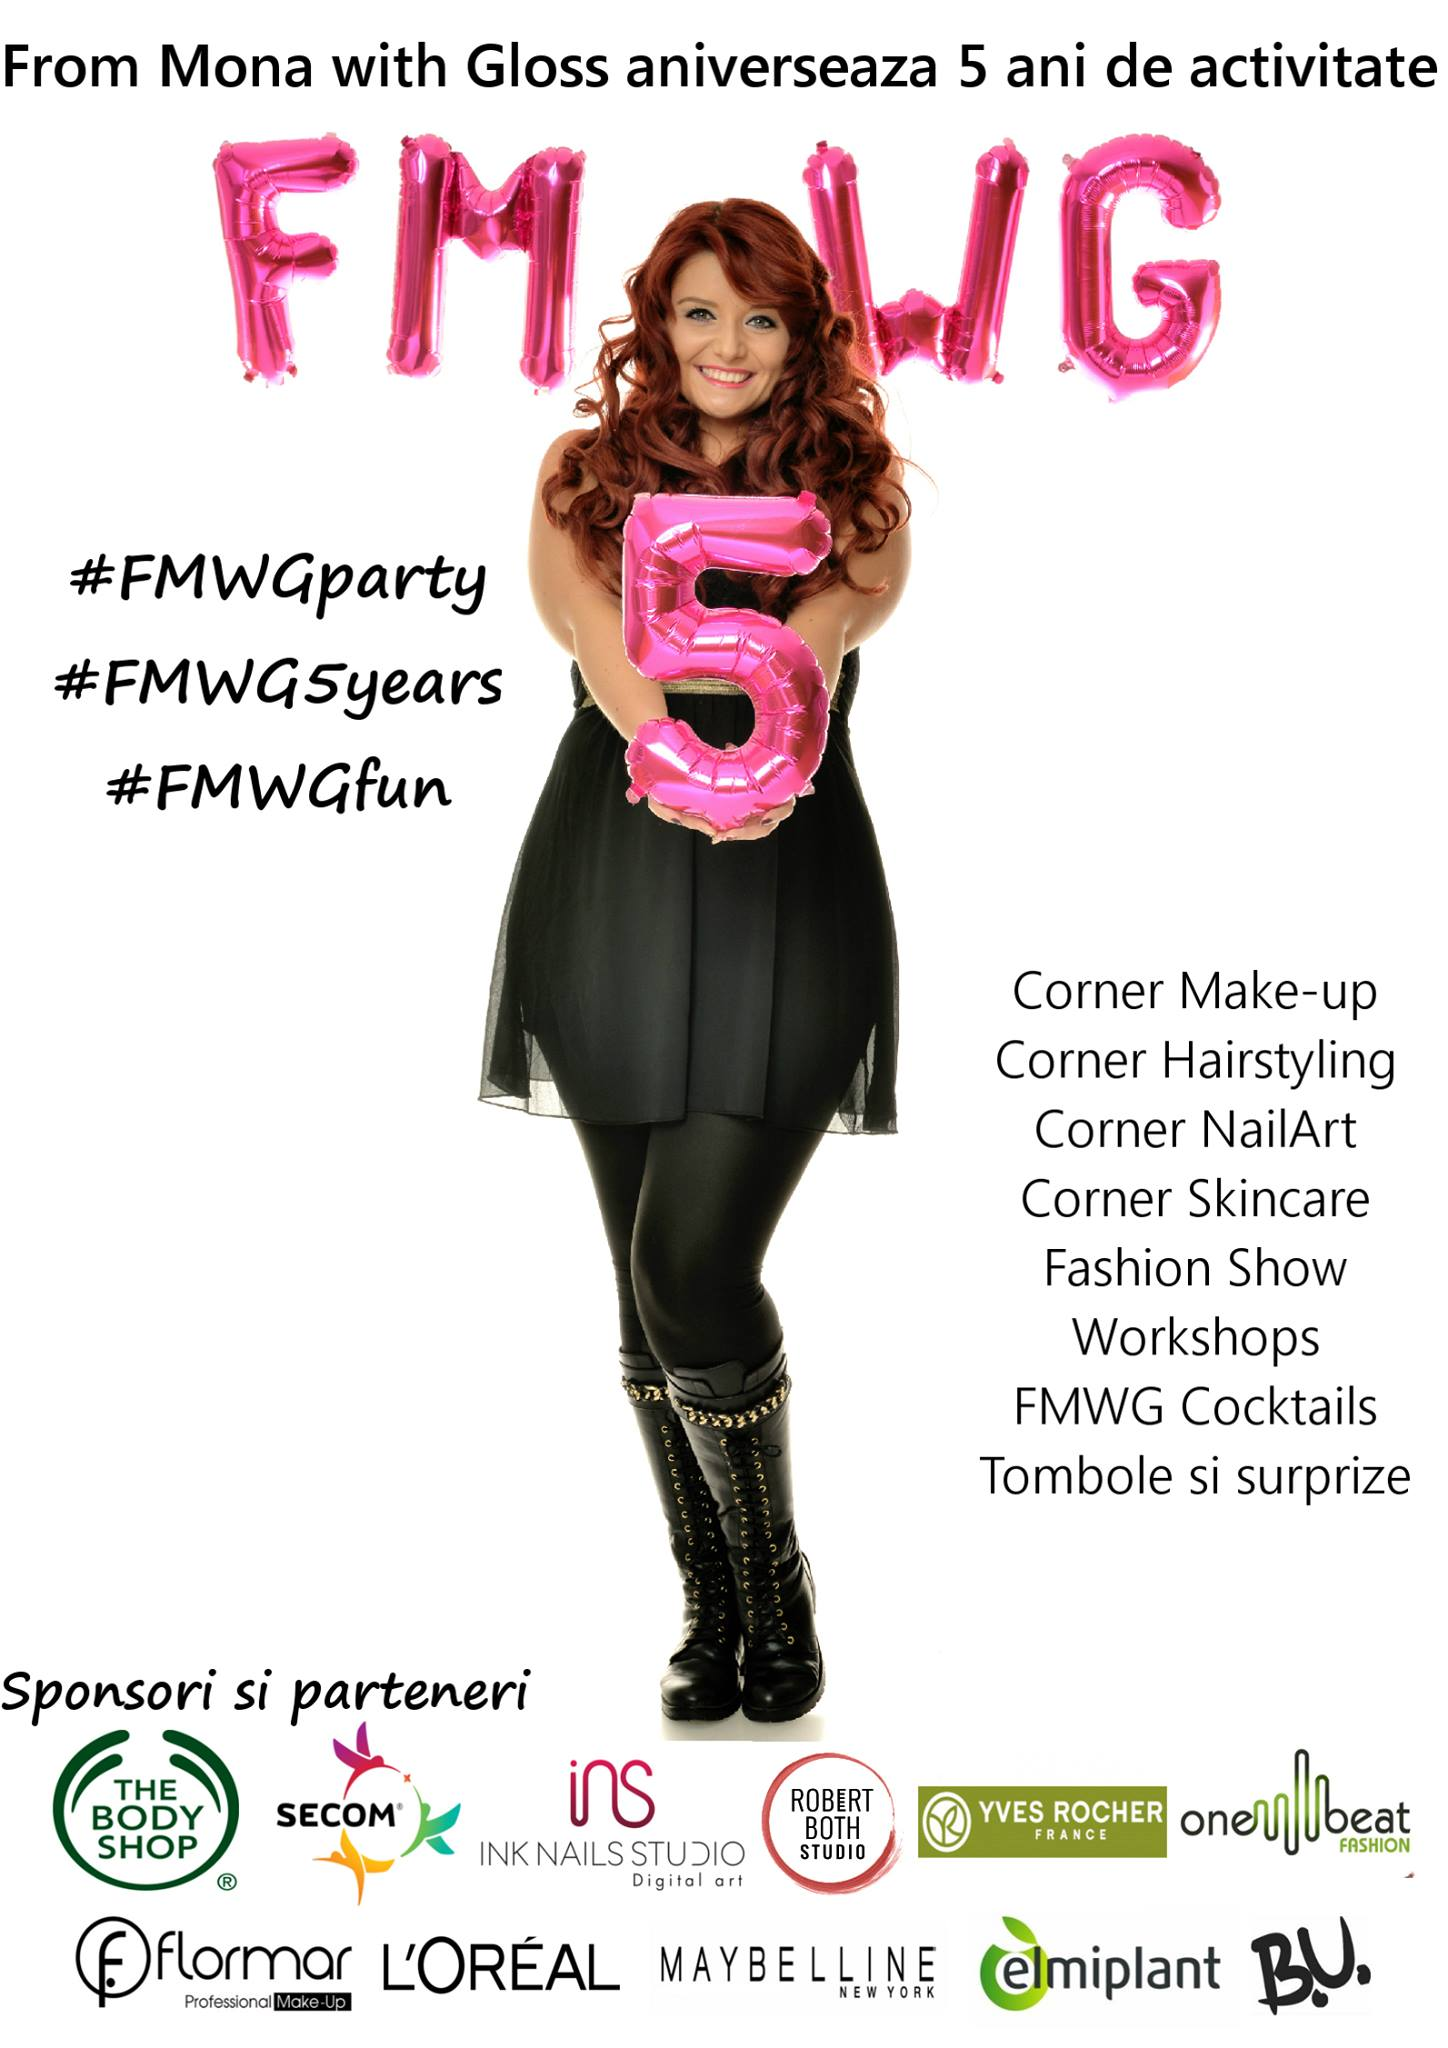 FMWG party